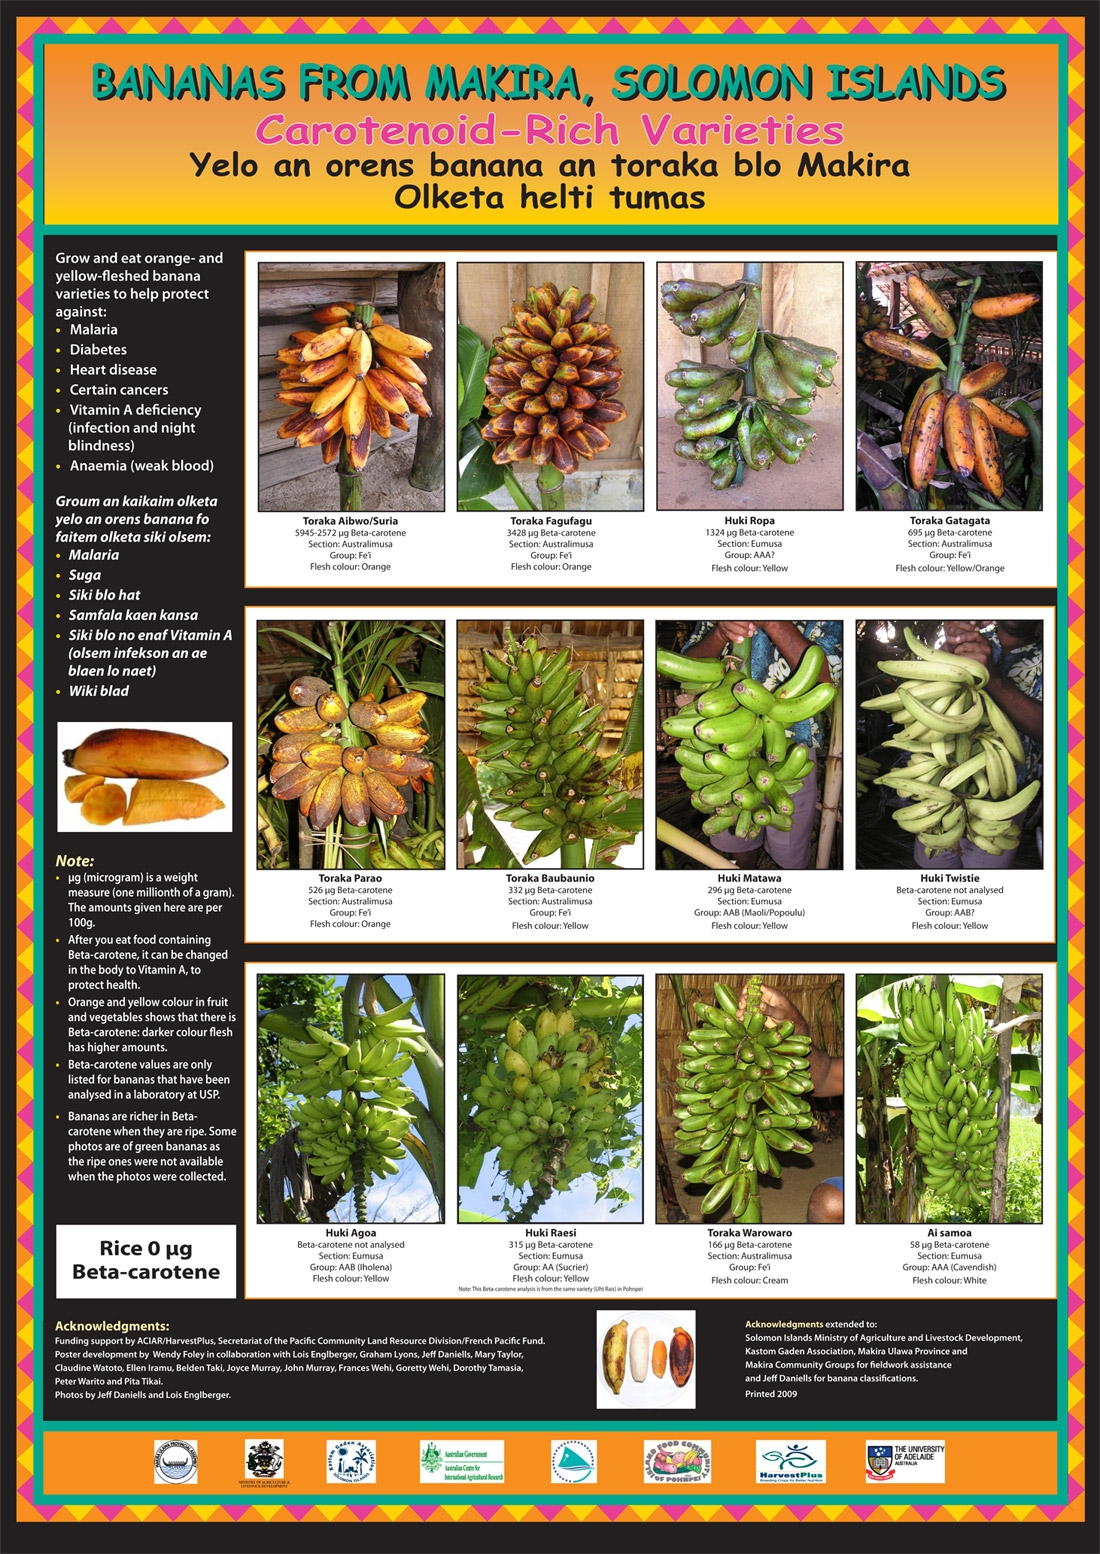 Poster of vitamin A-rich bananas of the Solomon Islands.